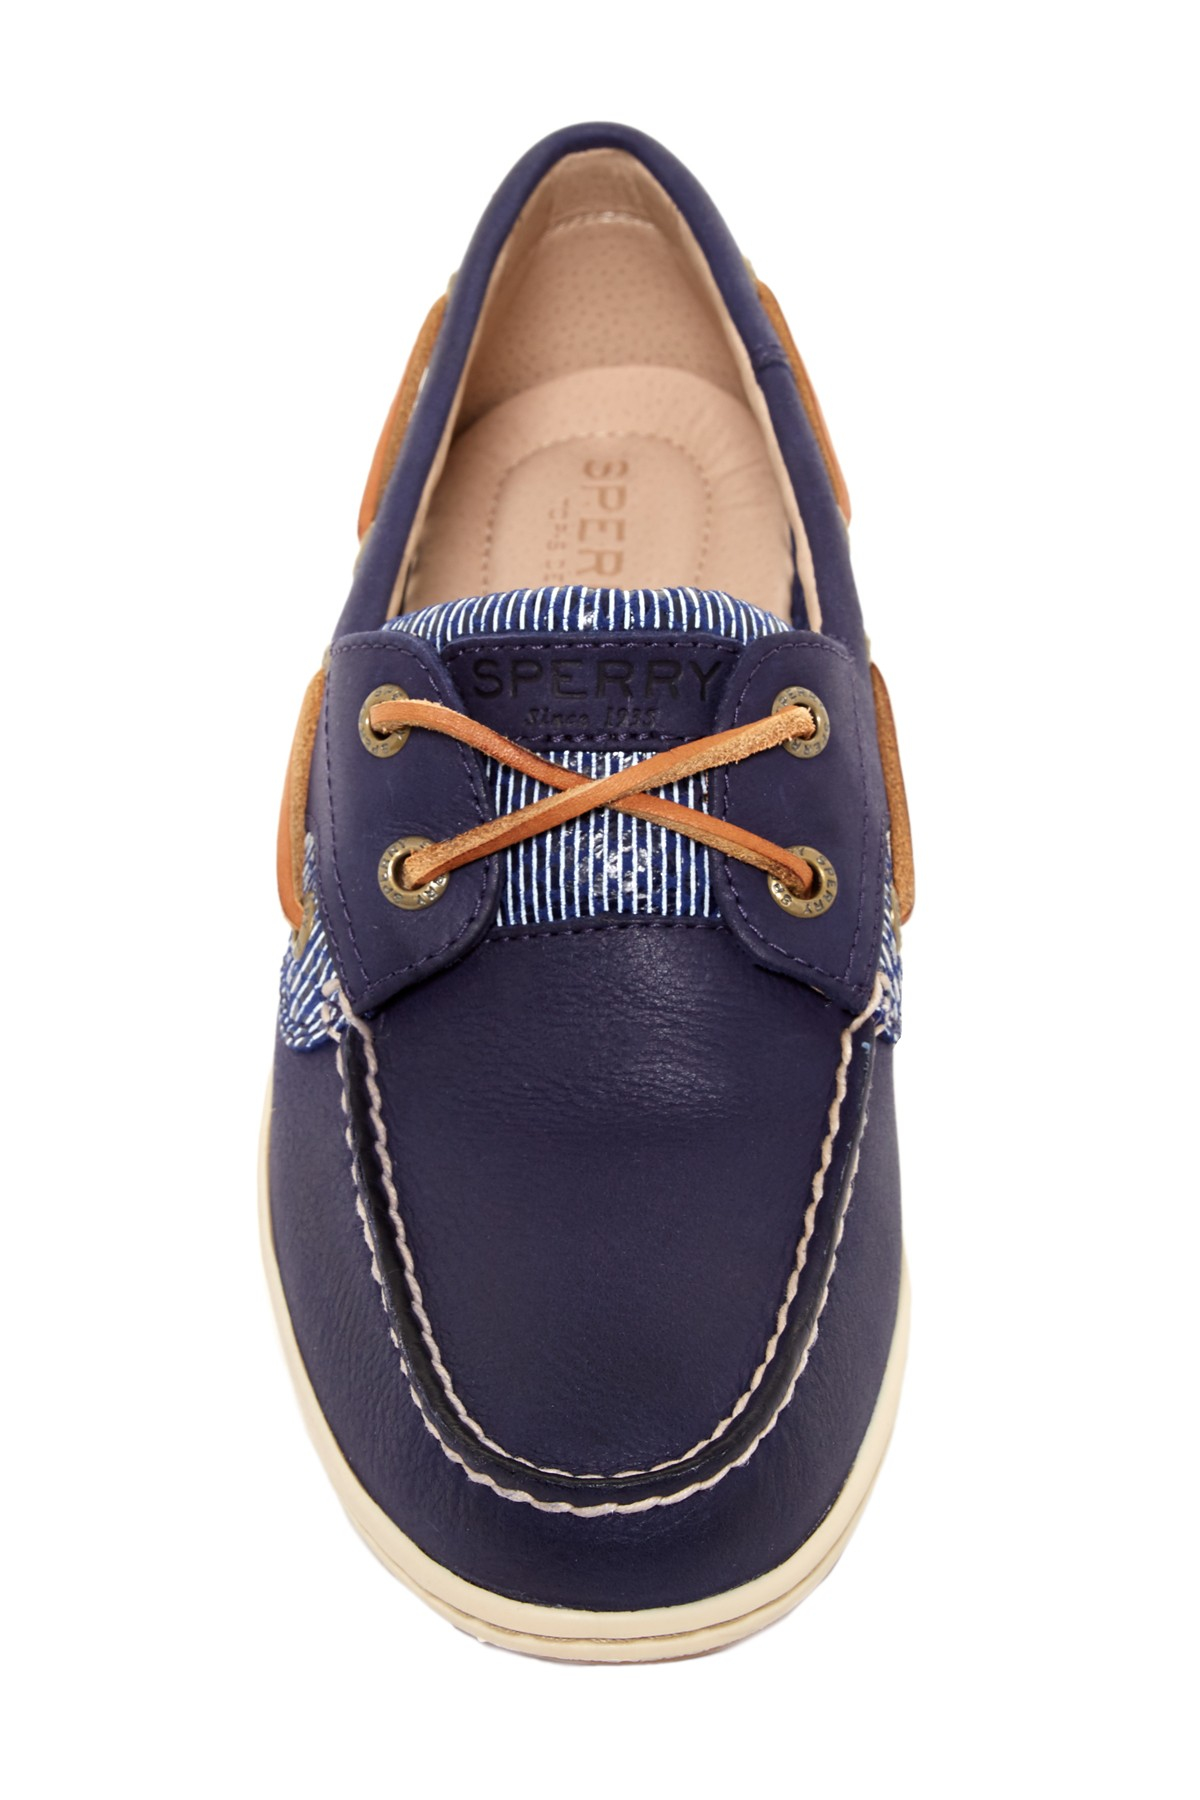 Lyst sperry top sider koifish core boat shoe in blue for men for Best boat shoes for fishing